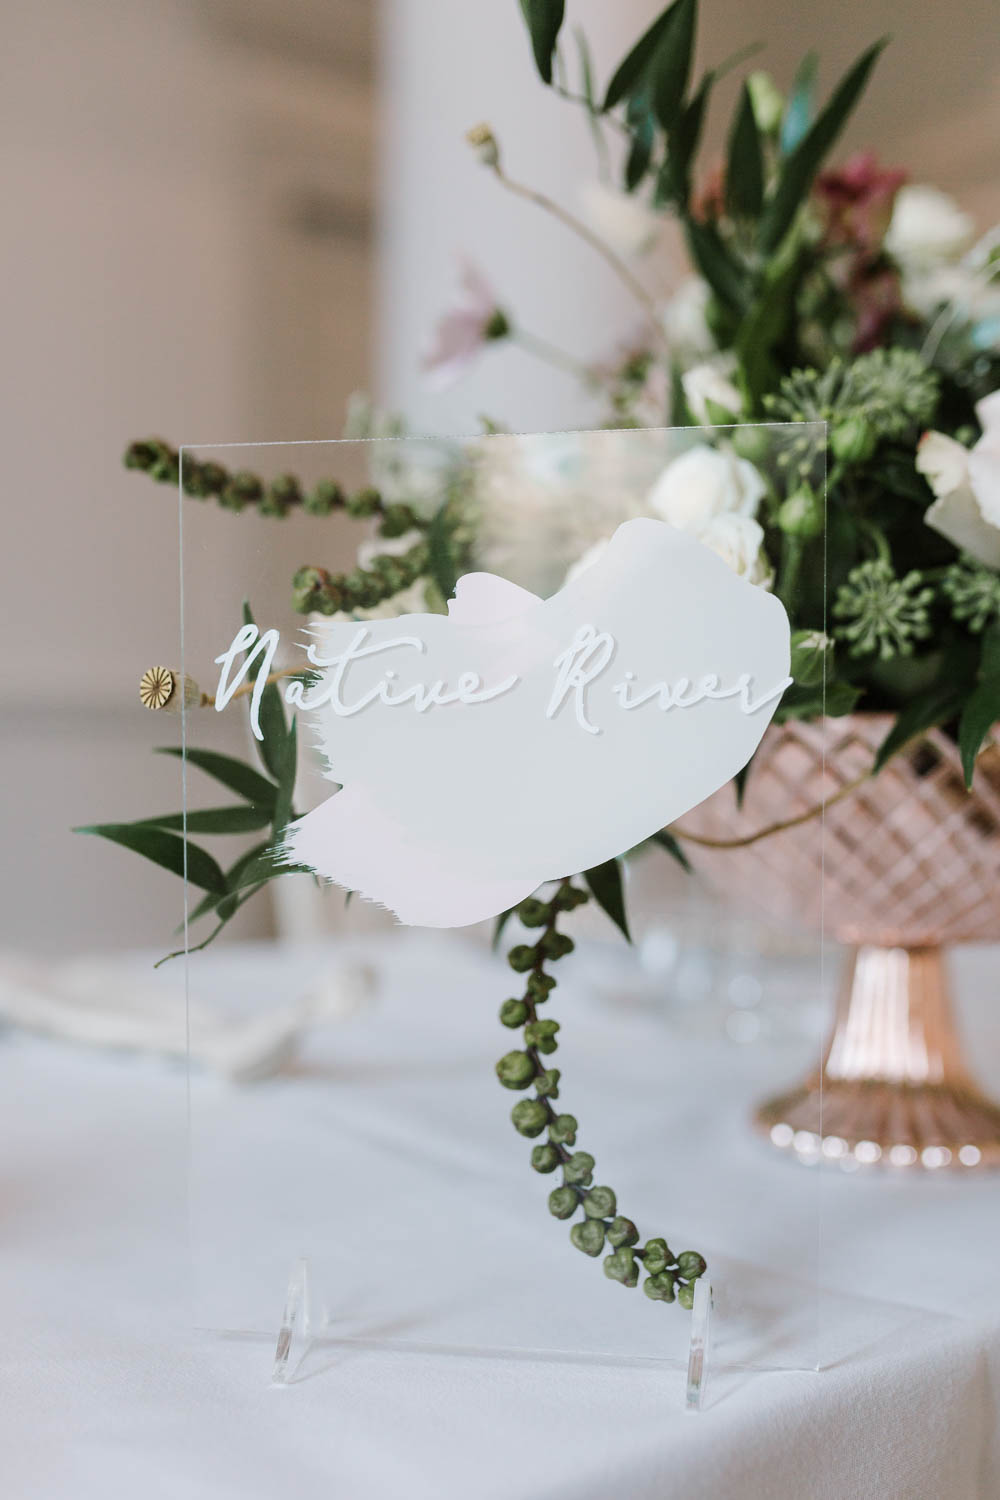 Table Name Sign Signs Signage Painted Perspex Acrylic Compton Verney Wedding Danielle Smith Photography